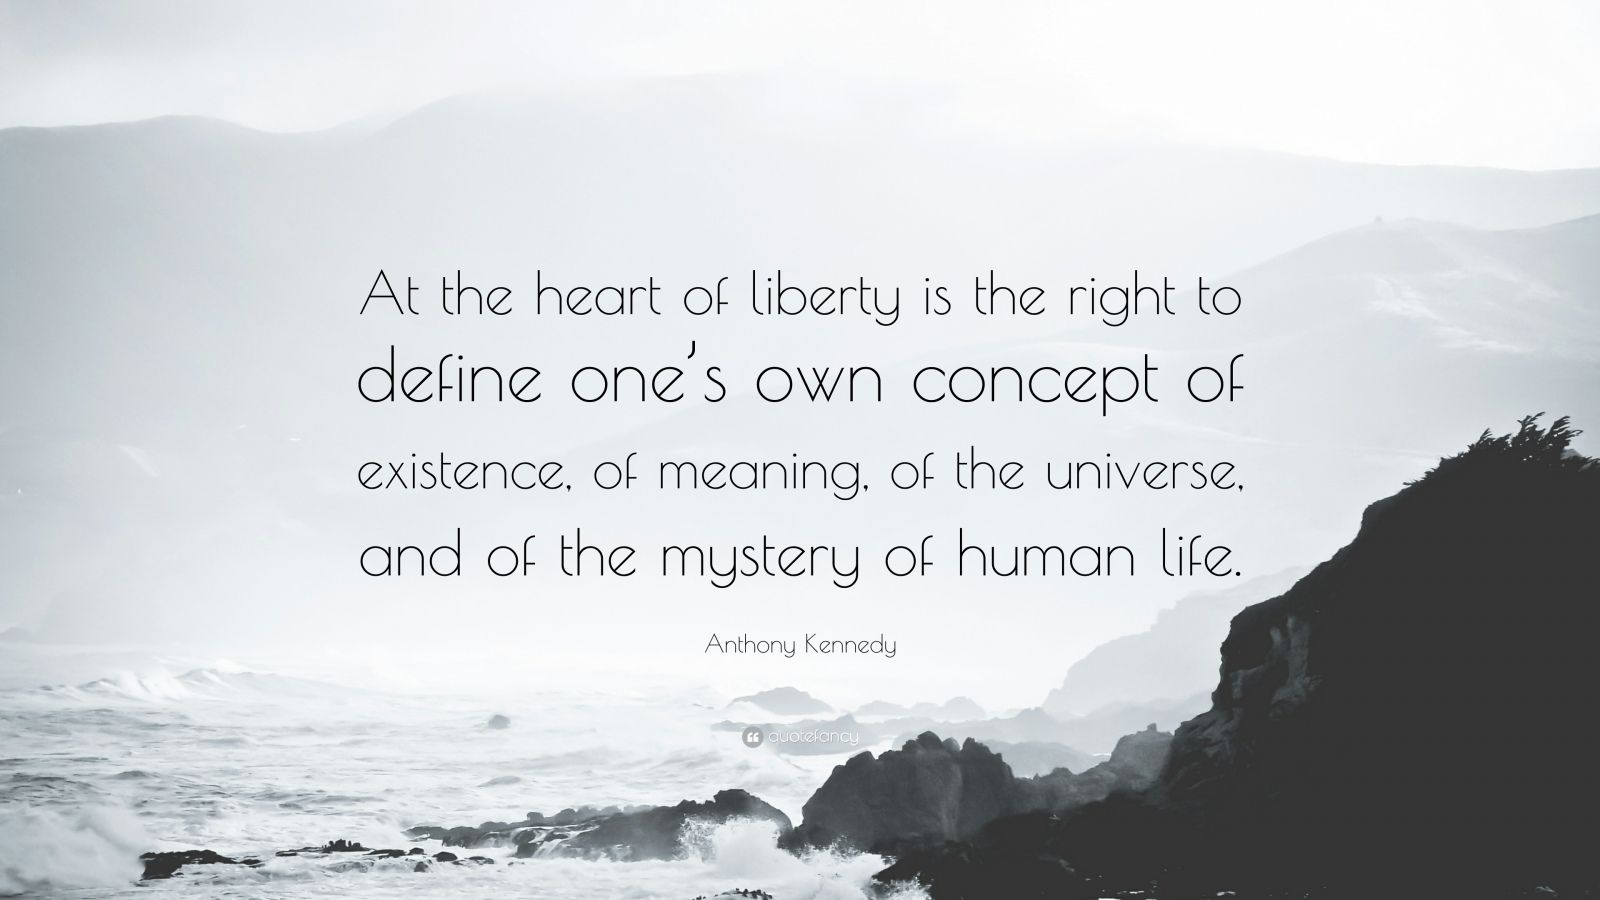 The significance of the right to